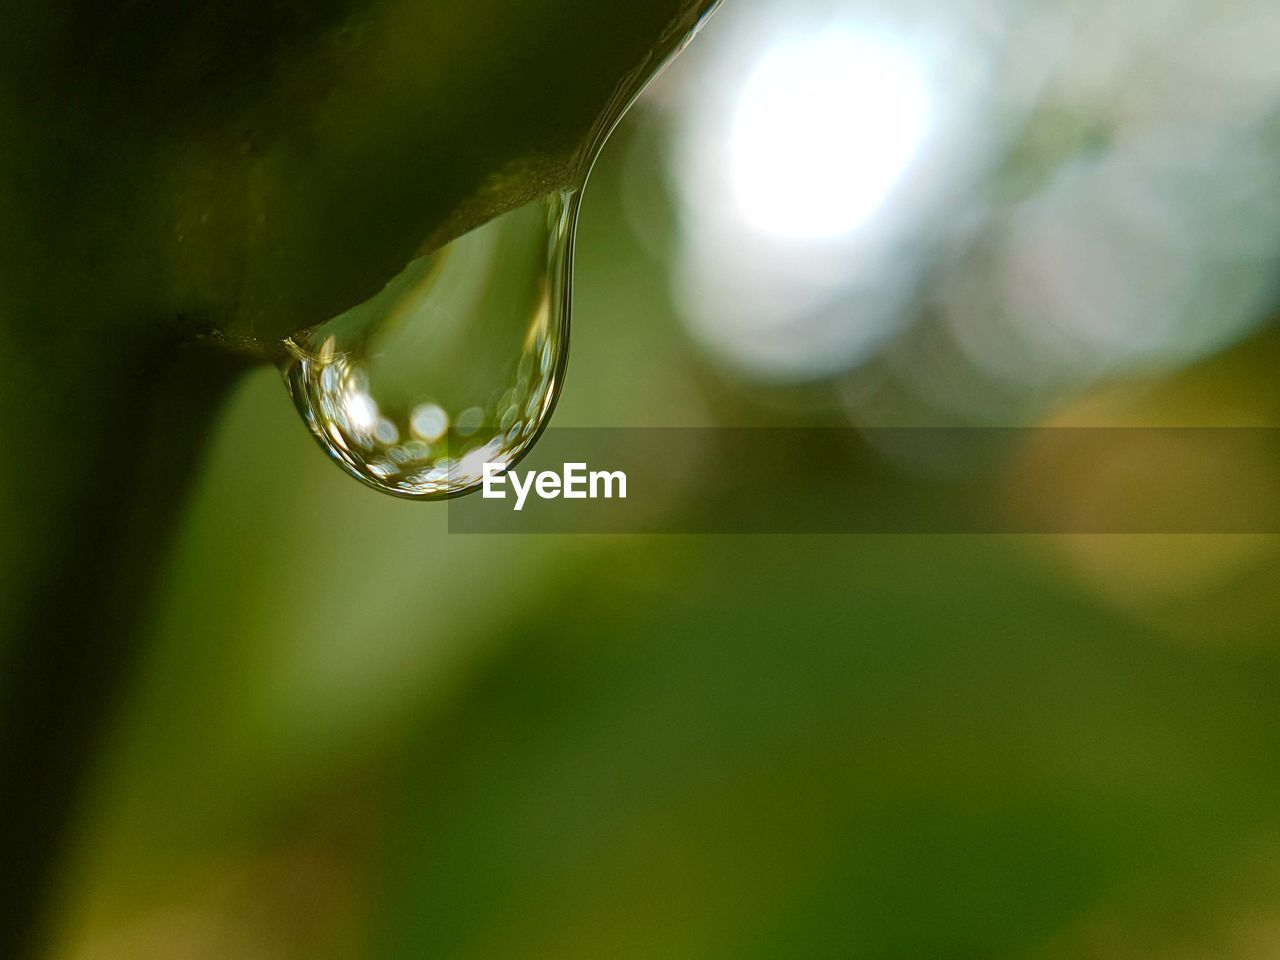 nature, drop, beauty in nature, focus on foreground, green color, close-up, no people, growth, water, outdoors, leaf, day, plant, purity, fragility, freshness, tree